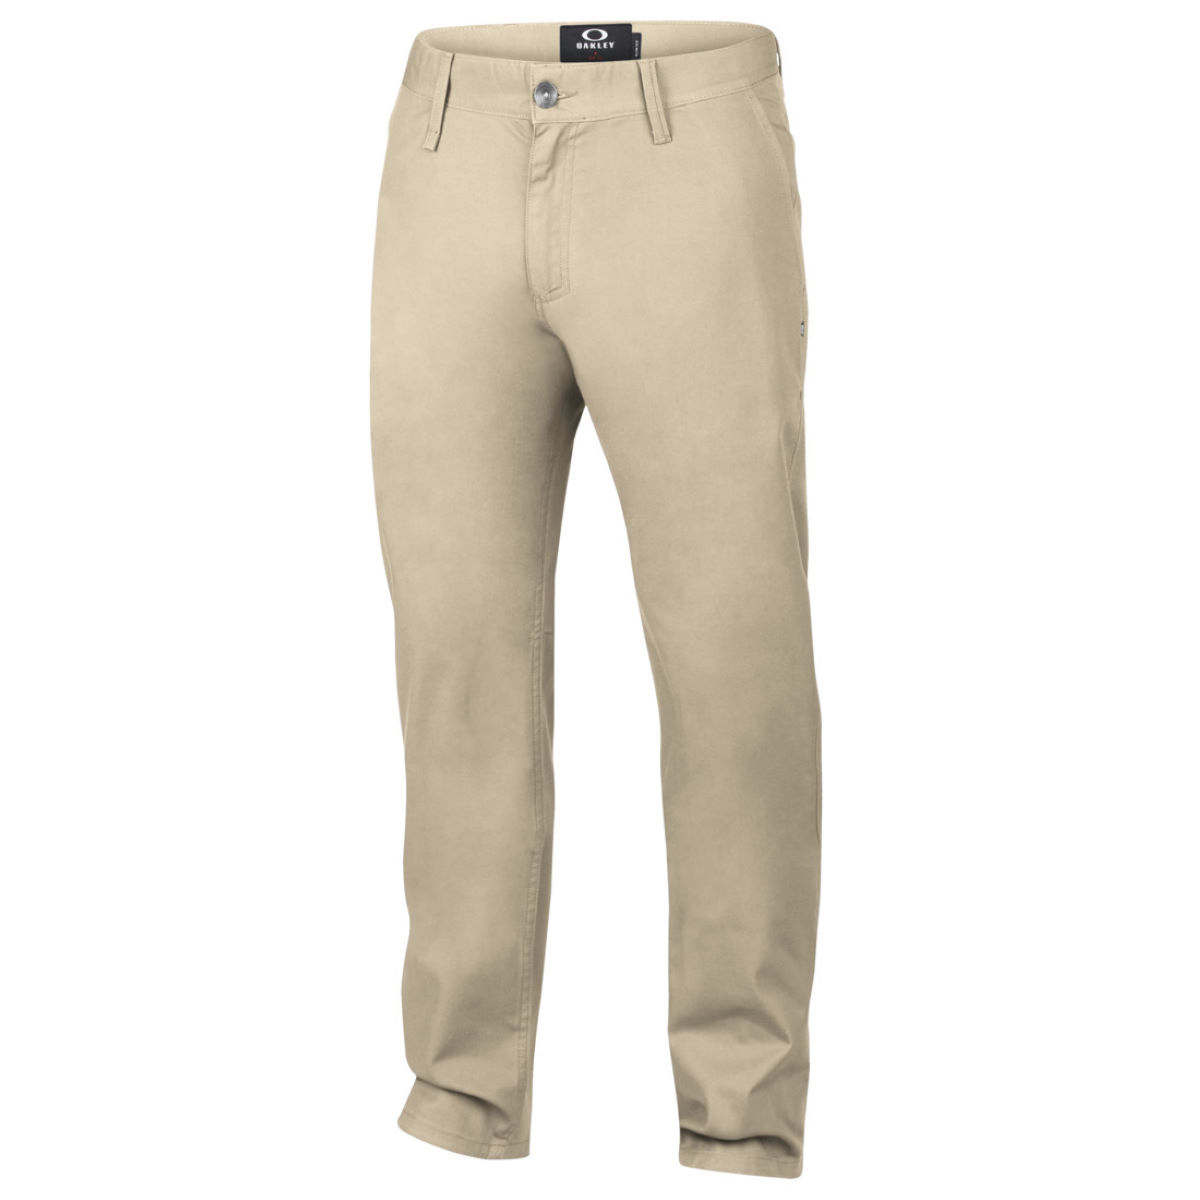 Oakley Sims Chino - Small Rye | Casual Pants